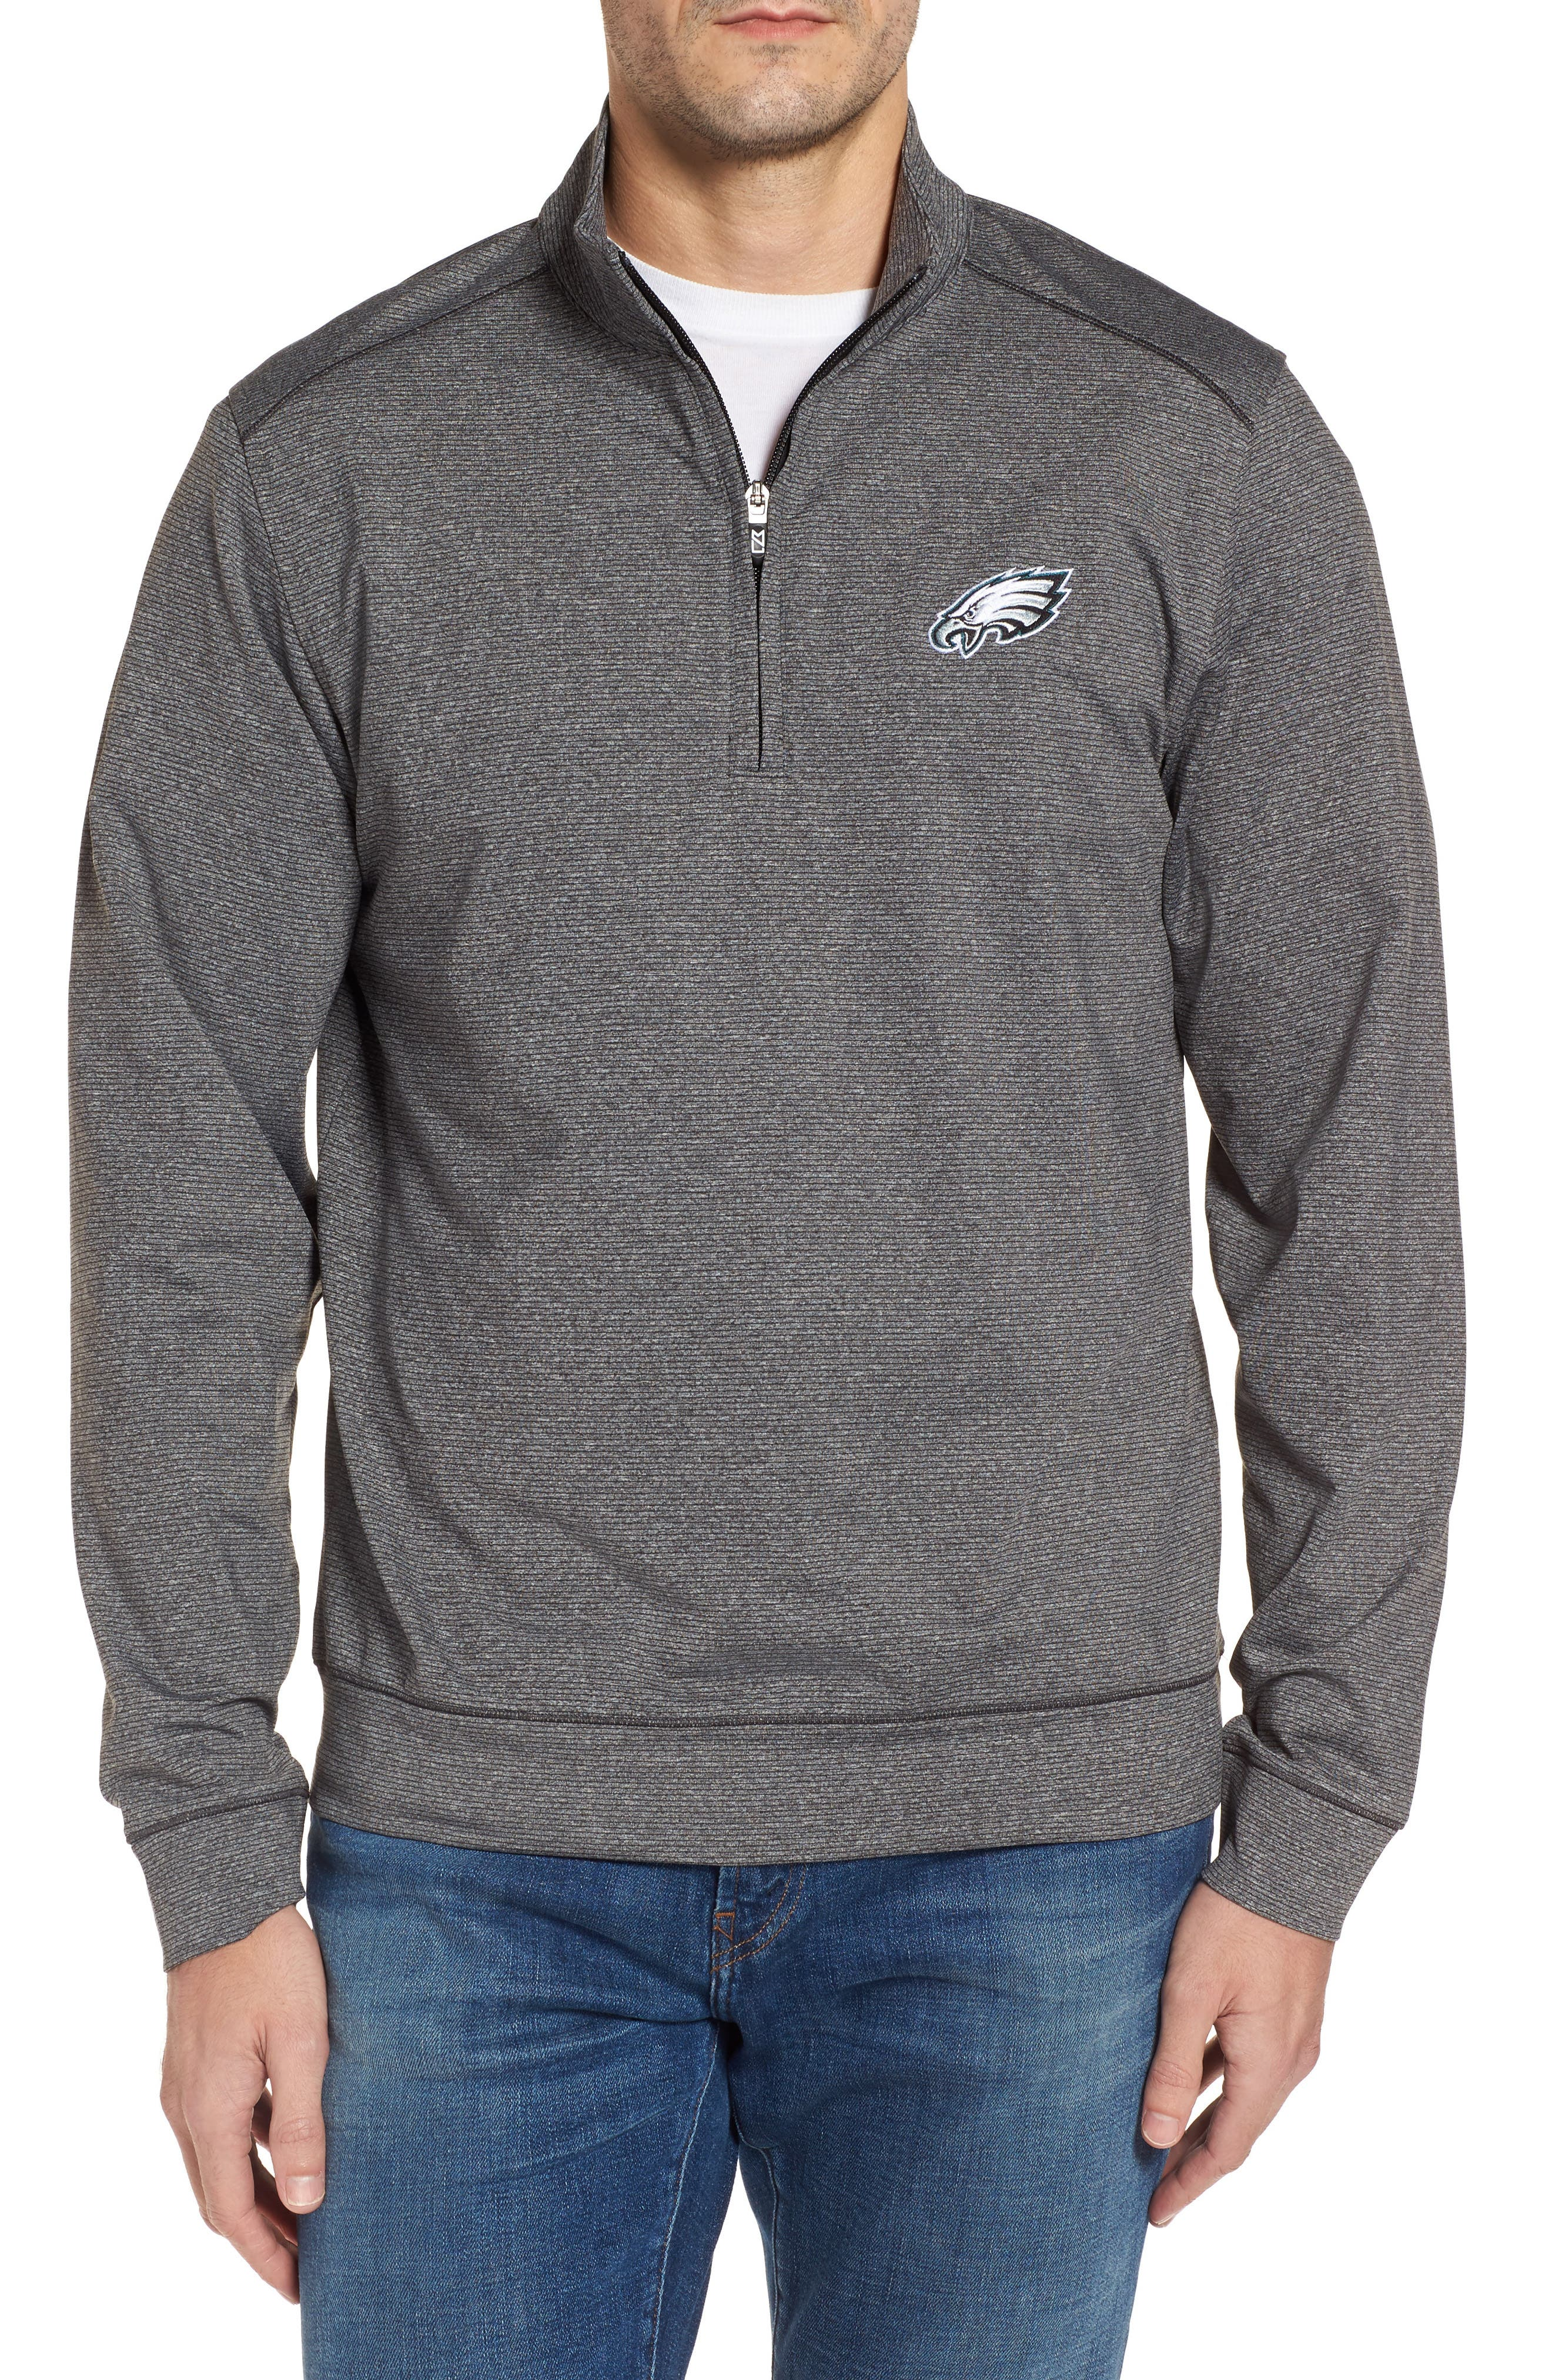 Shoreline - Philadelphia Eagles Half Zip Pullover,                             Main thumbnail 1, color,                             Charcoal Heather